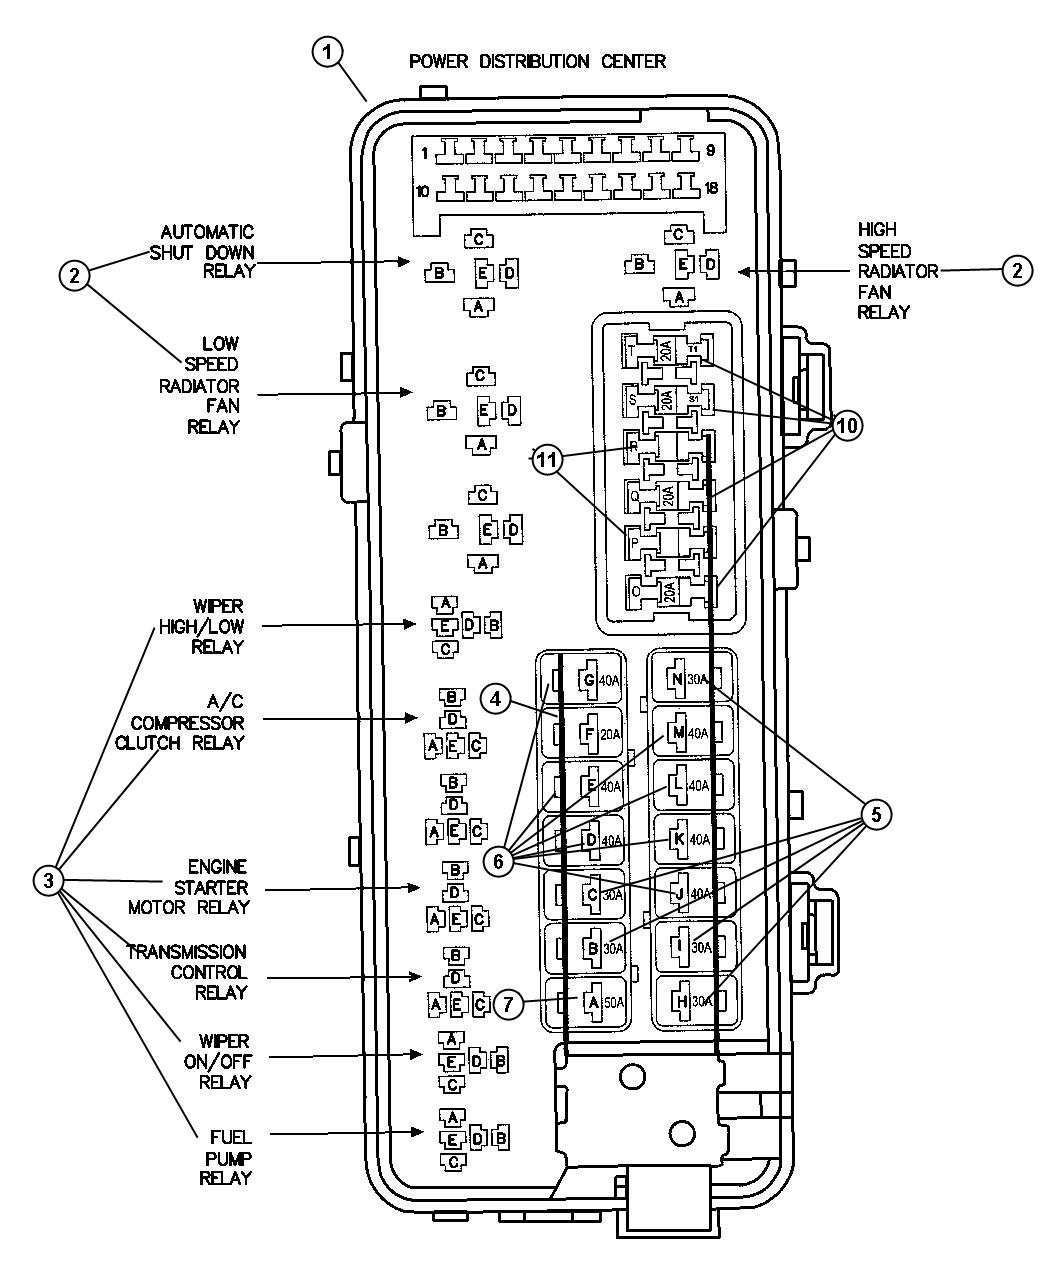 95 chrysler concorde fuse diagram  95  free engine image